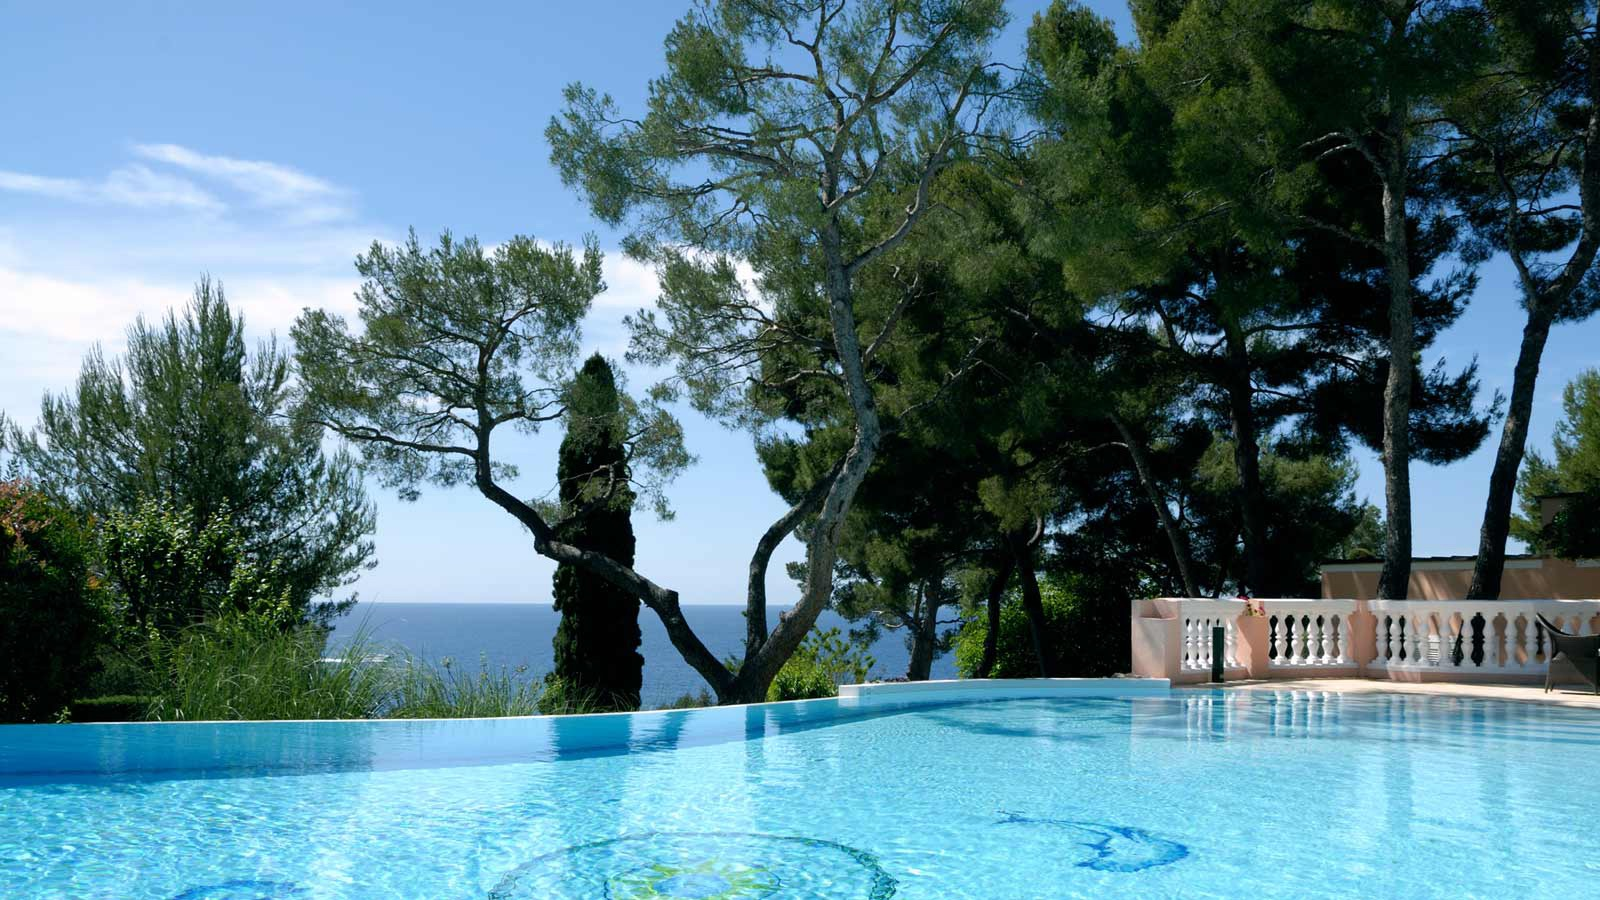 The private pool at the Villa Rose-Pierre